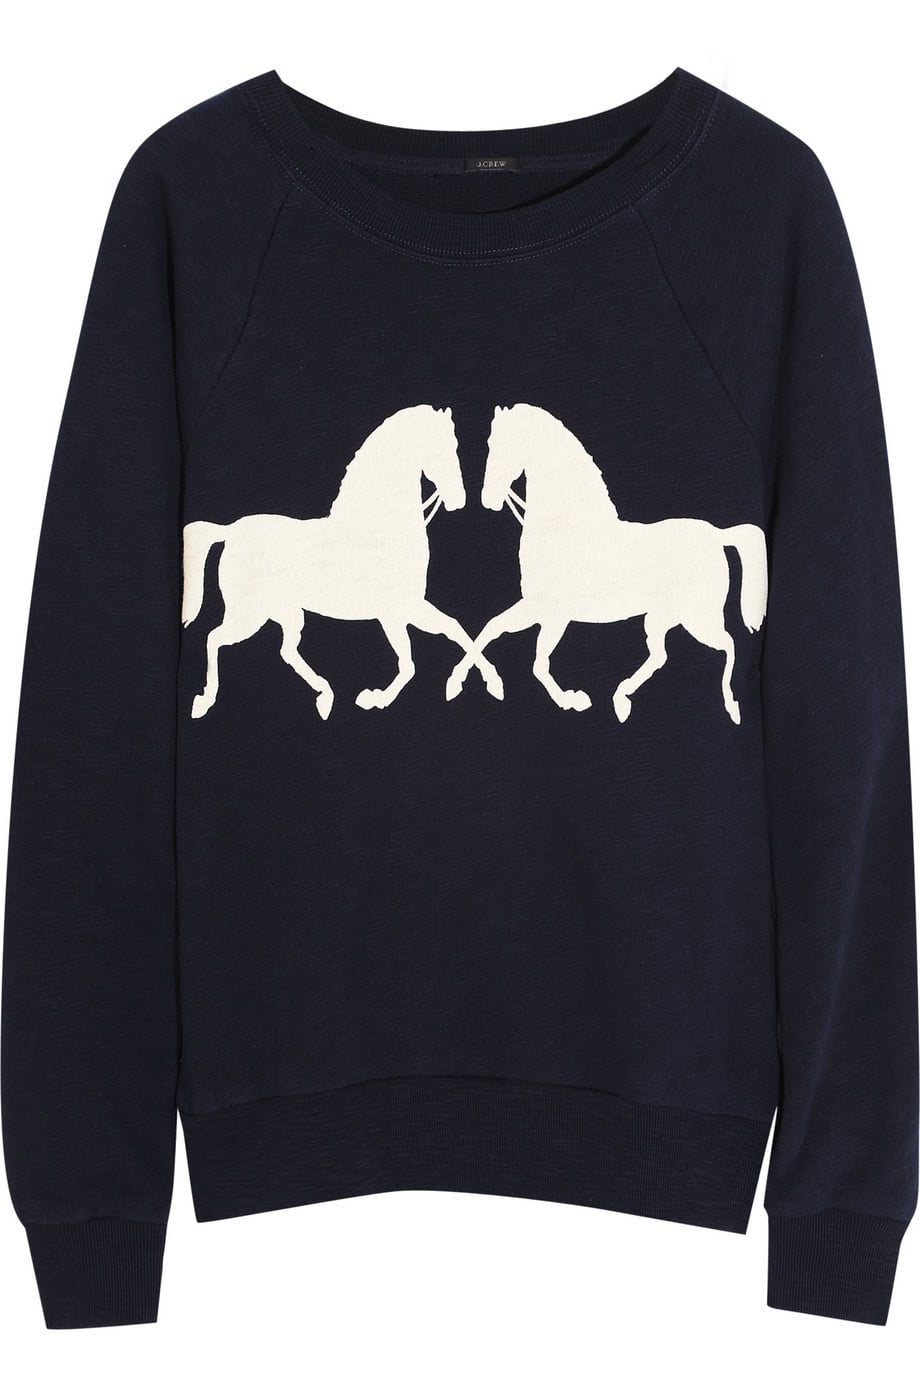 You don't have to be an equestrian to appreciate this J.Crew Horsing Around Sweater ($65).